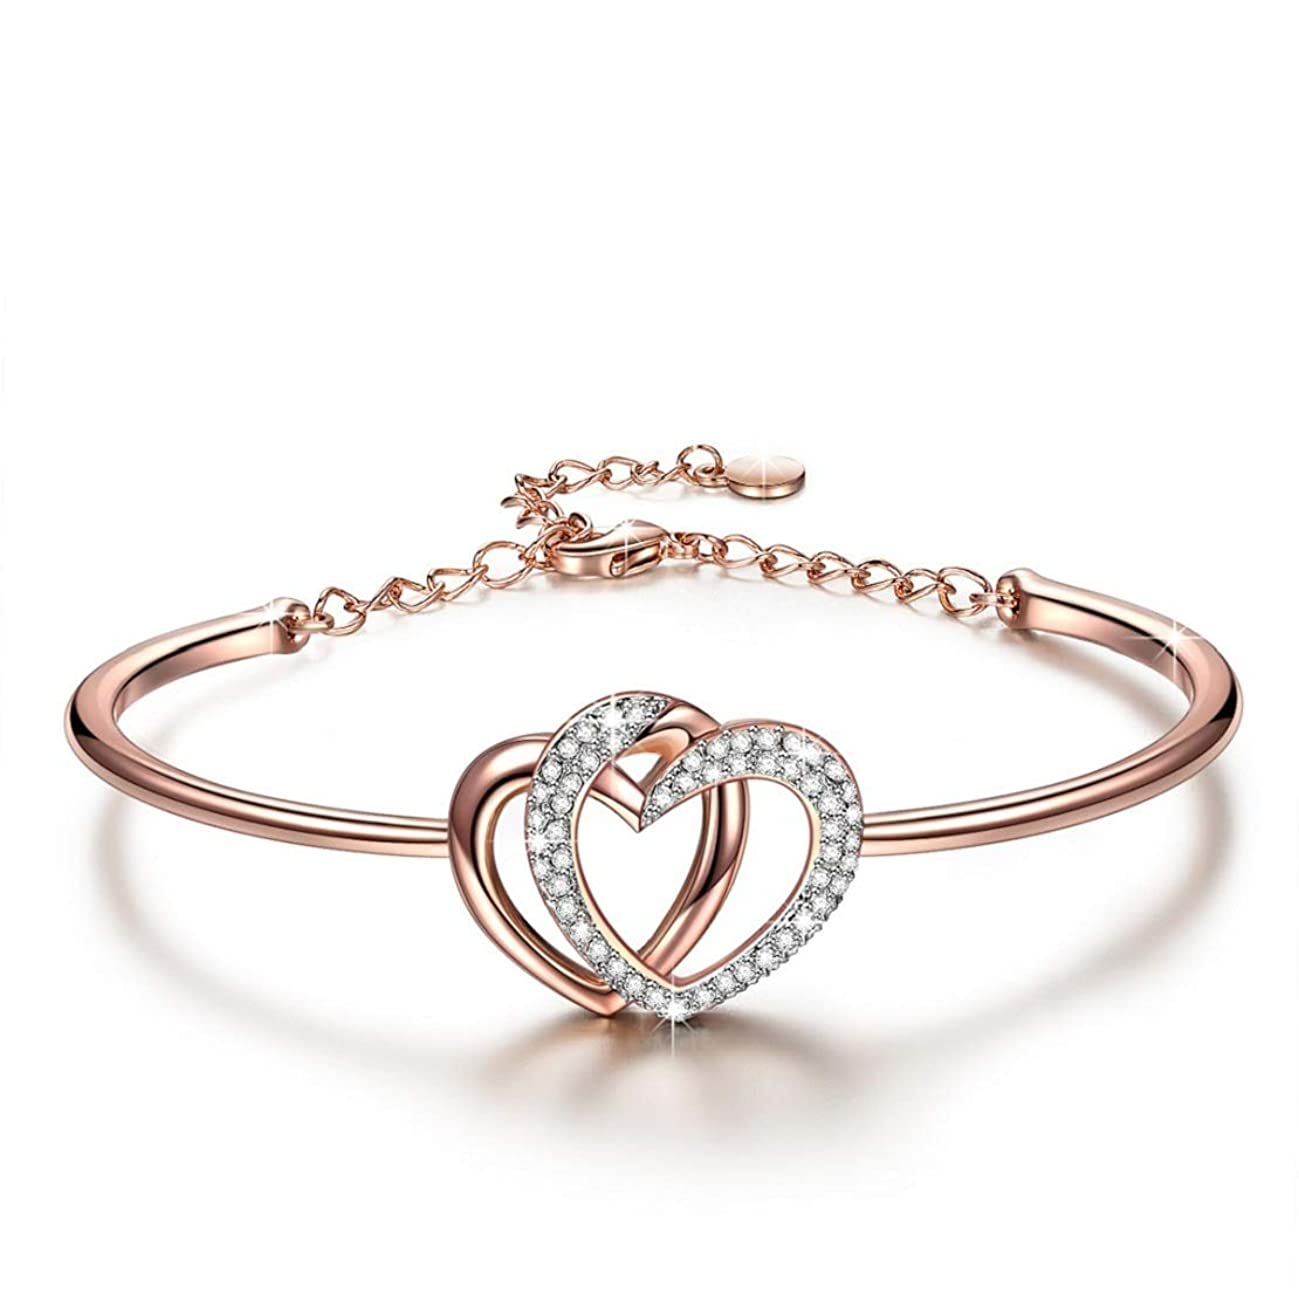 J.NINA ? Guardian of Love ? Charming Heart Bracelet for Women Rose Gold Plated with Crystals from Swarovski ? Romantic Gift for Her ?